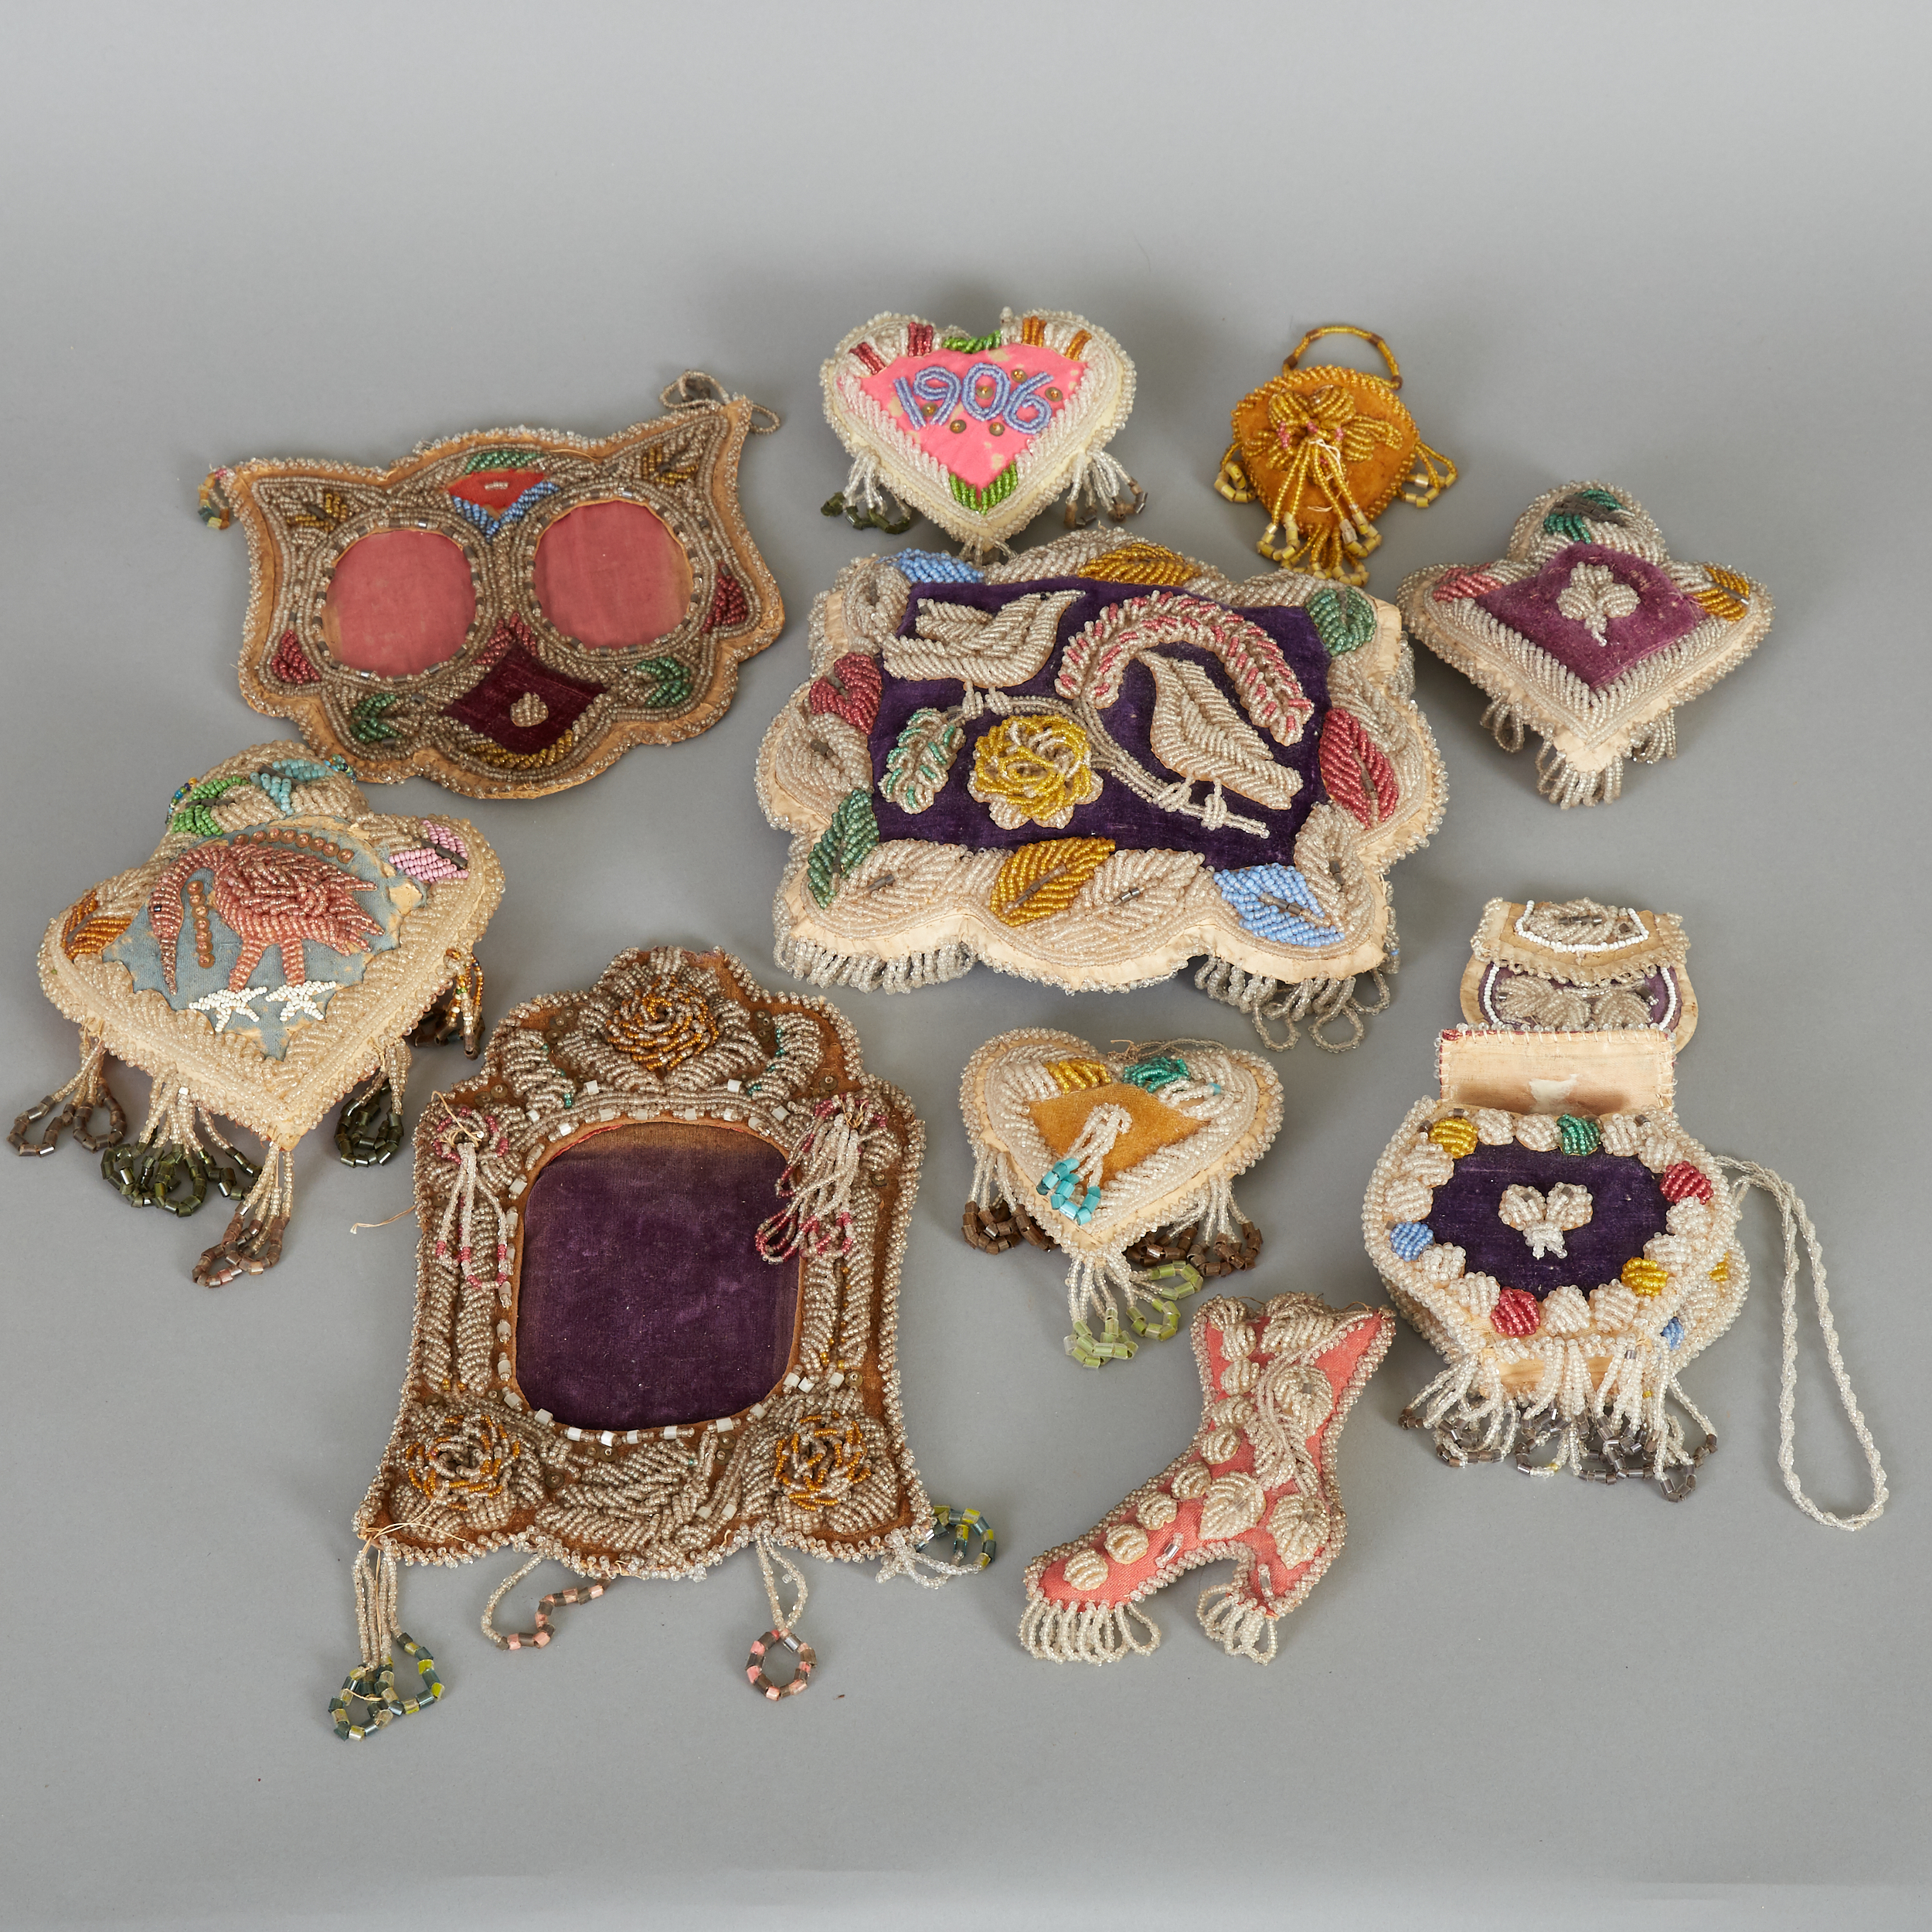 Lot 221 - Group of 11 Iroquois Beadwork Objects